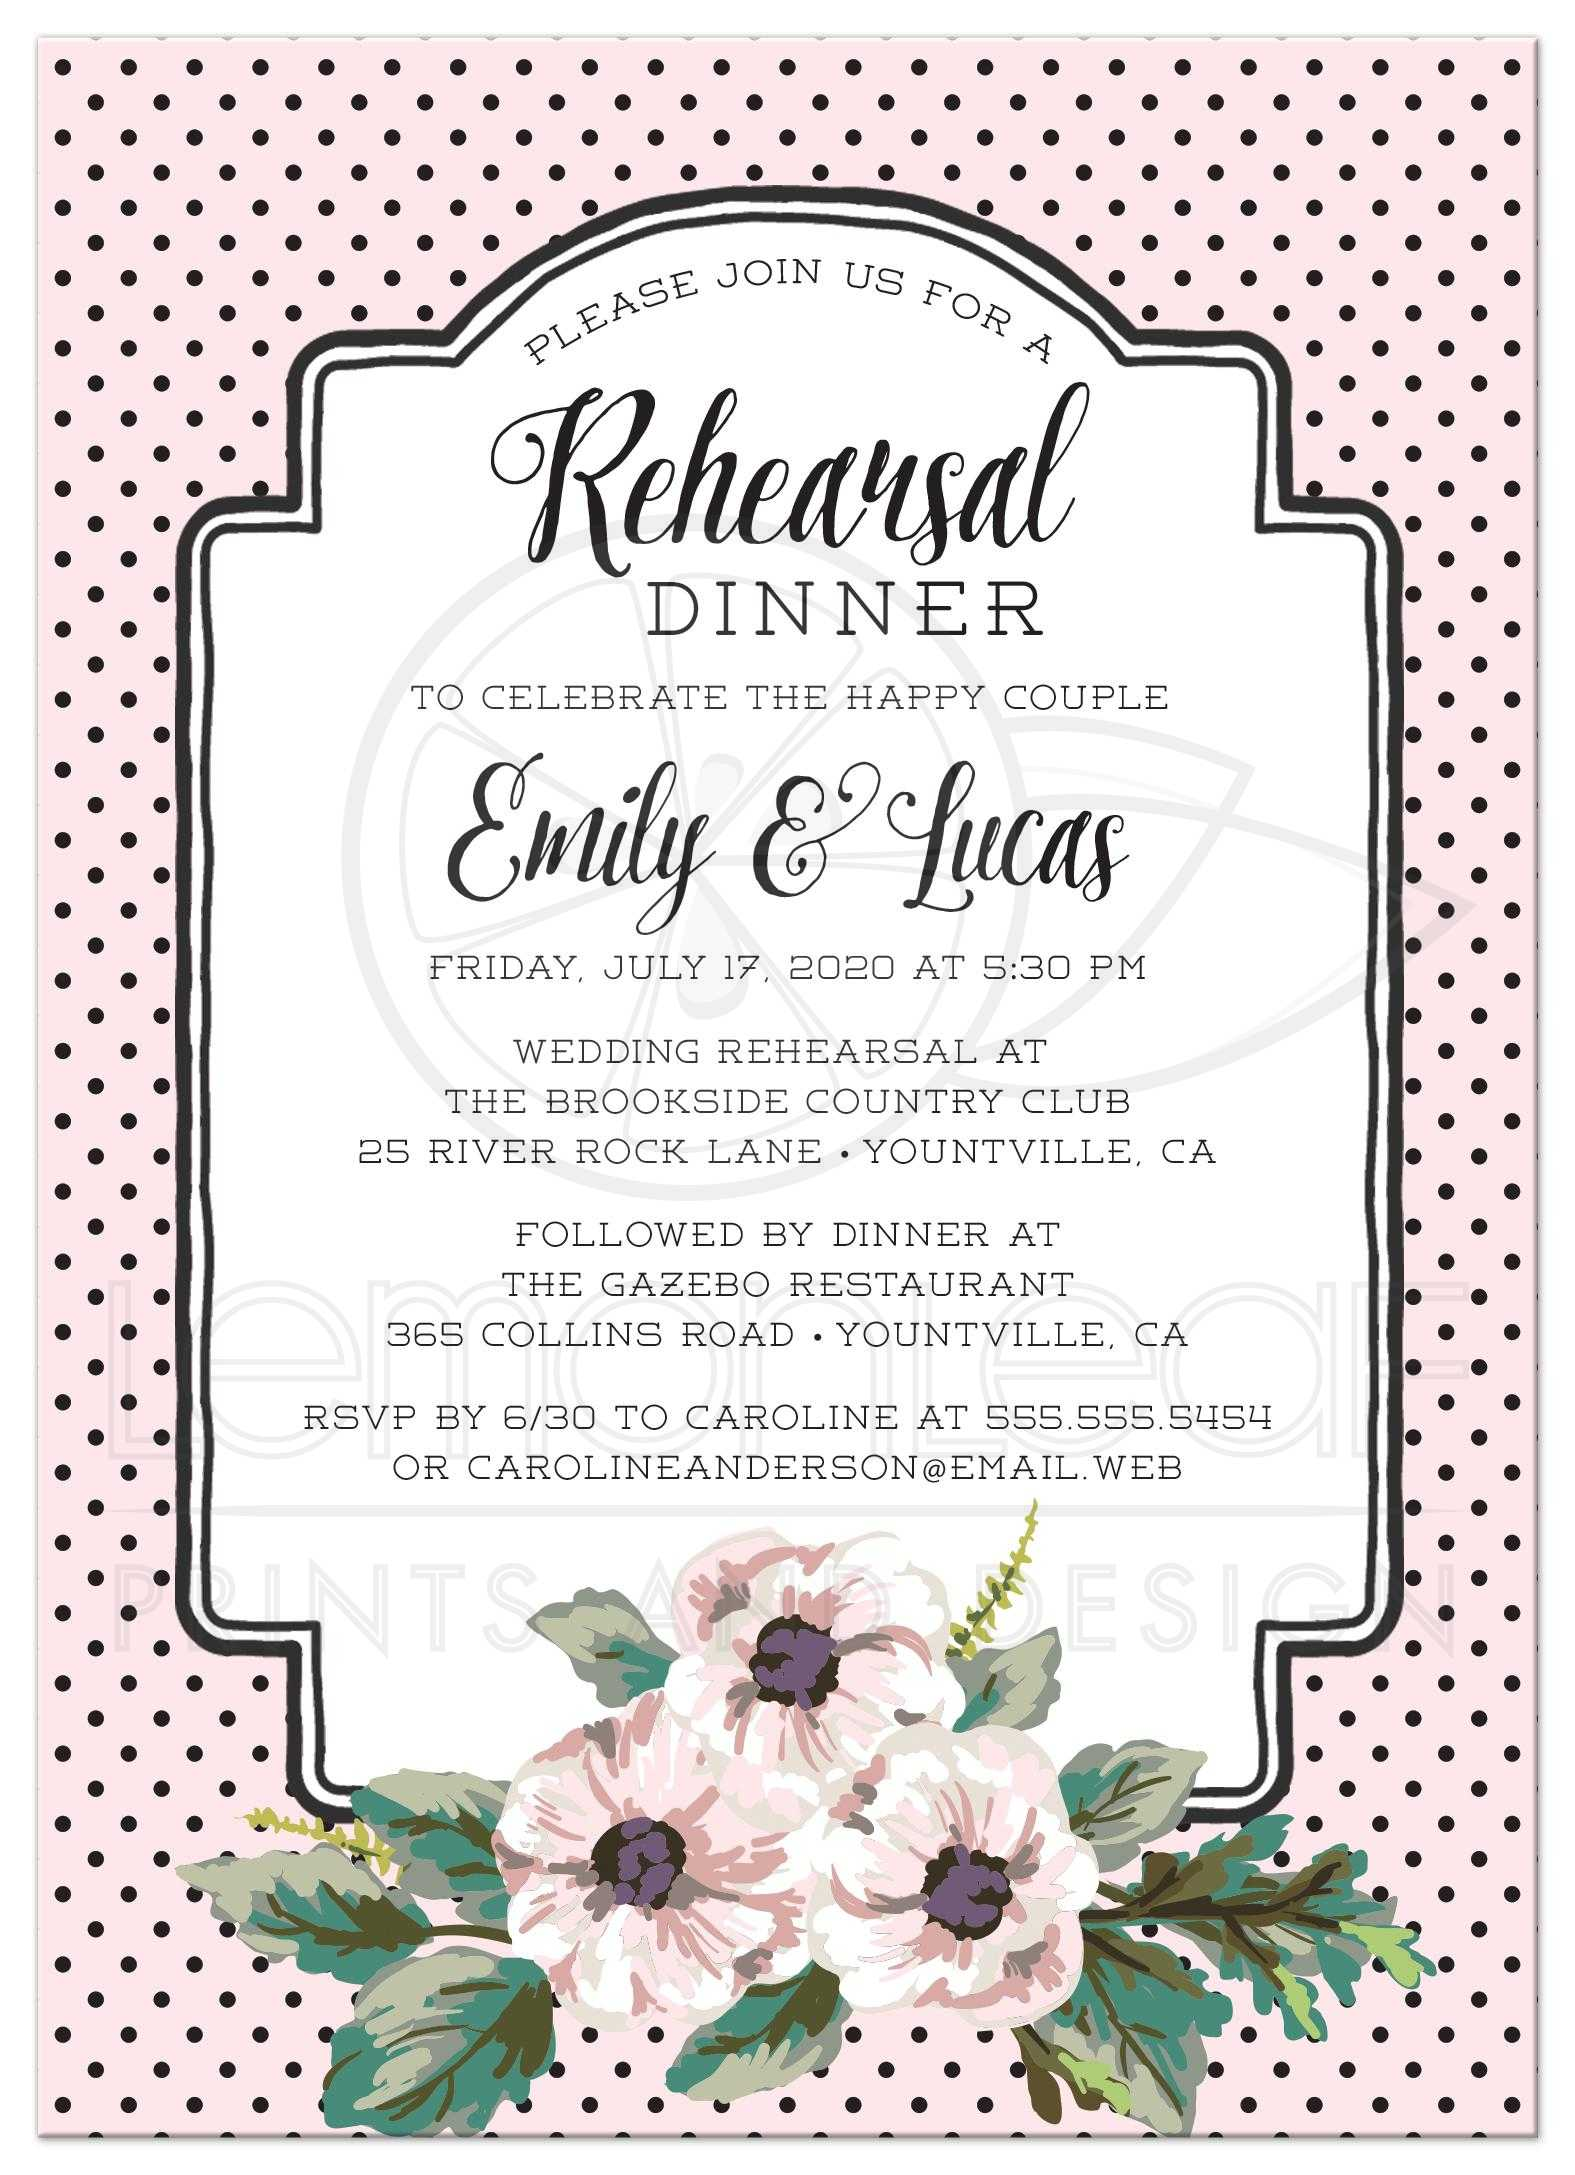 wedding rehearsal dinner invitations retro polka dots flowers